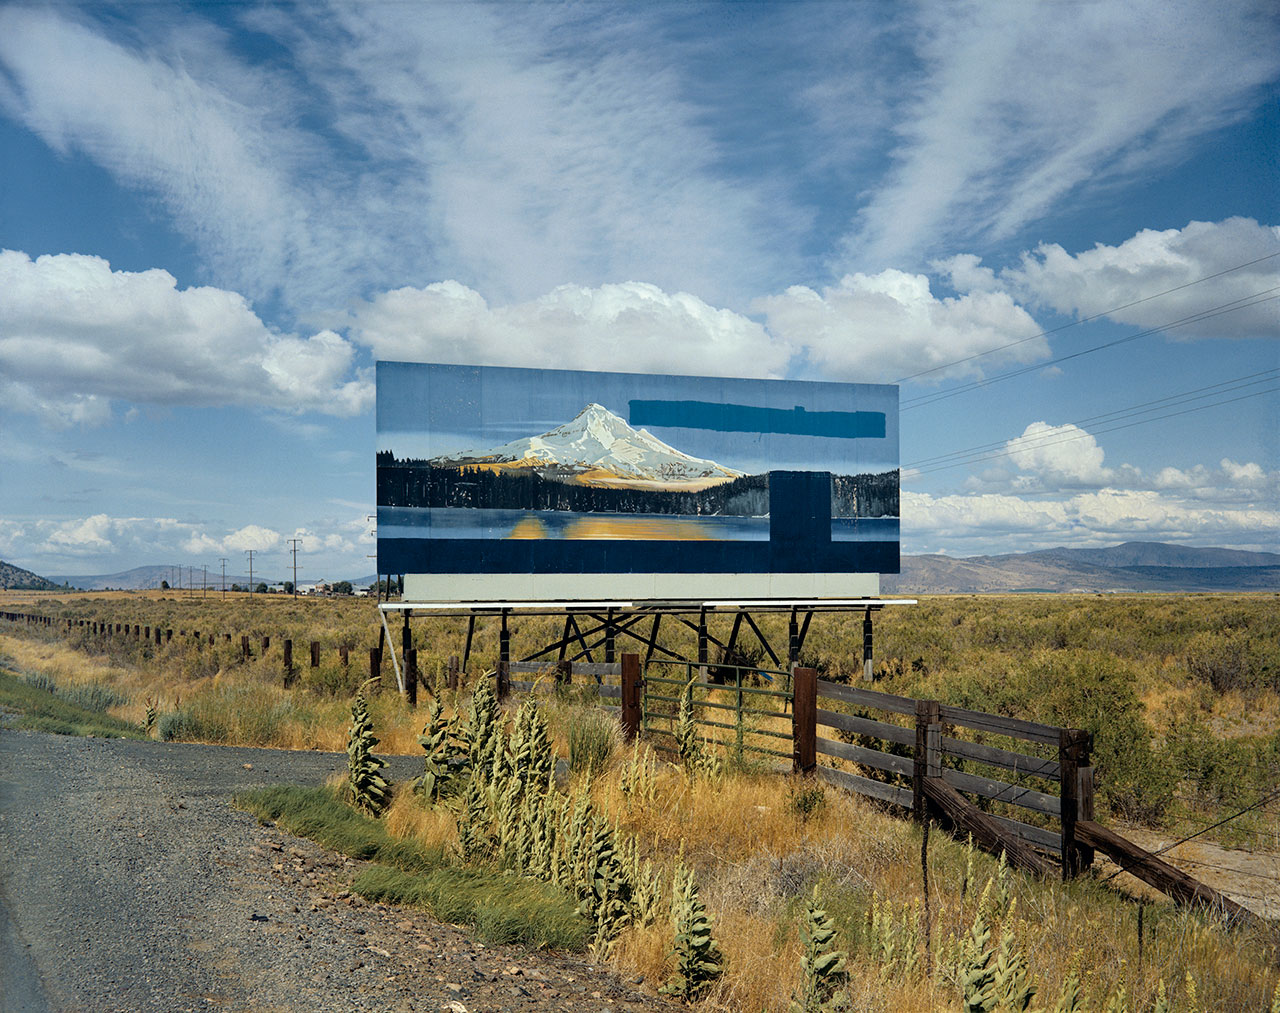 Stephen Shore, 'U.S. 97, South of Klamath Falls, Oregon, July 21, 1973', 1973 (printed 2002). C-print, Edition of 8, 43.2 x 55.2 cm / Paper 50.8 x 61 cm / Framed 59 x 68 cm. Courtesy of the artist and 303 Gallery, New York.